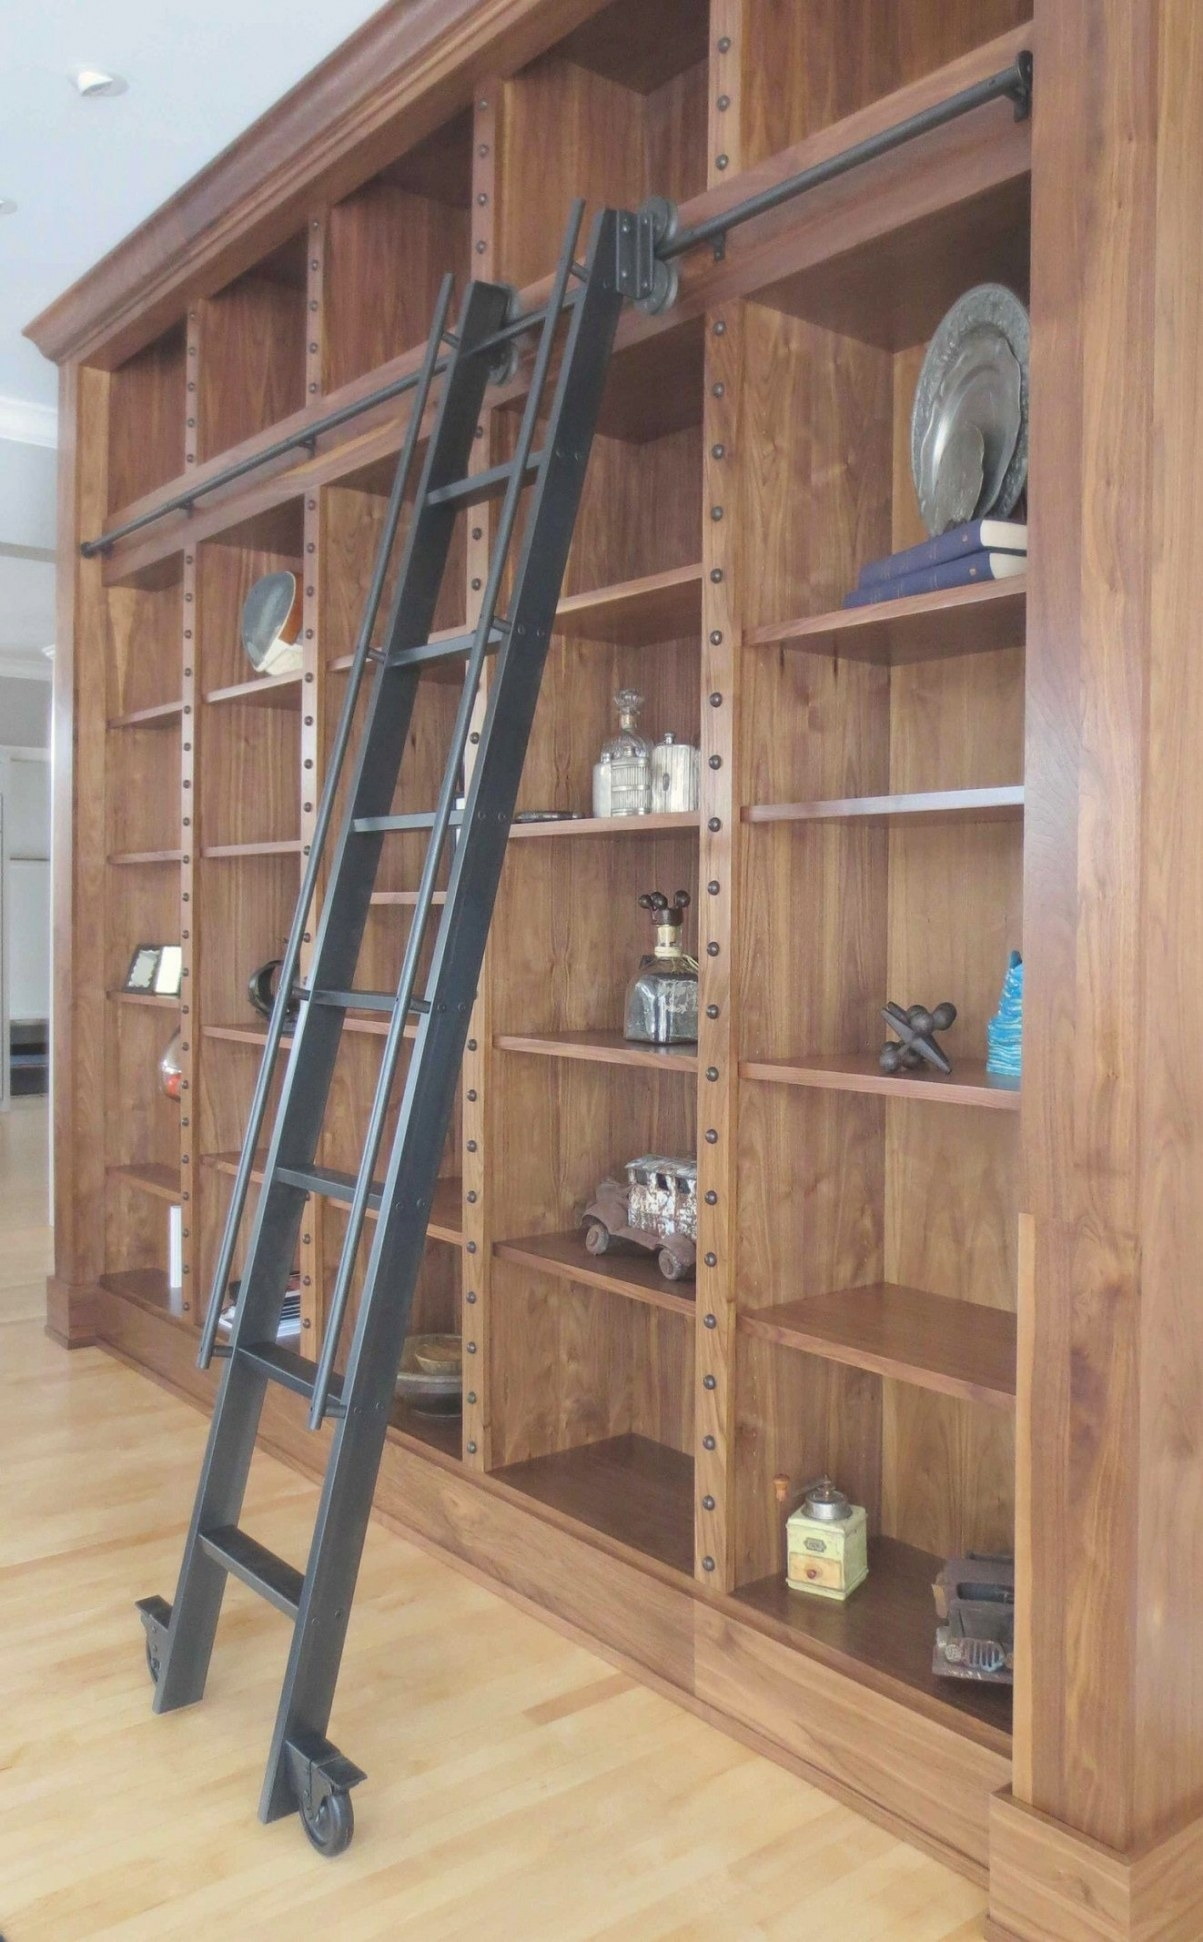 Vintage Black Library Ladder With Wooden Book Storage Set in Library Ladder In Kitchen